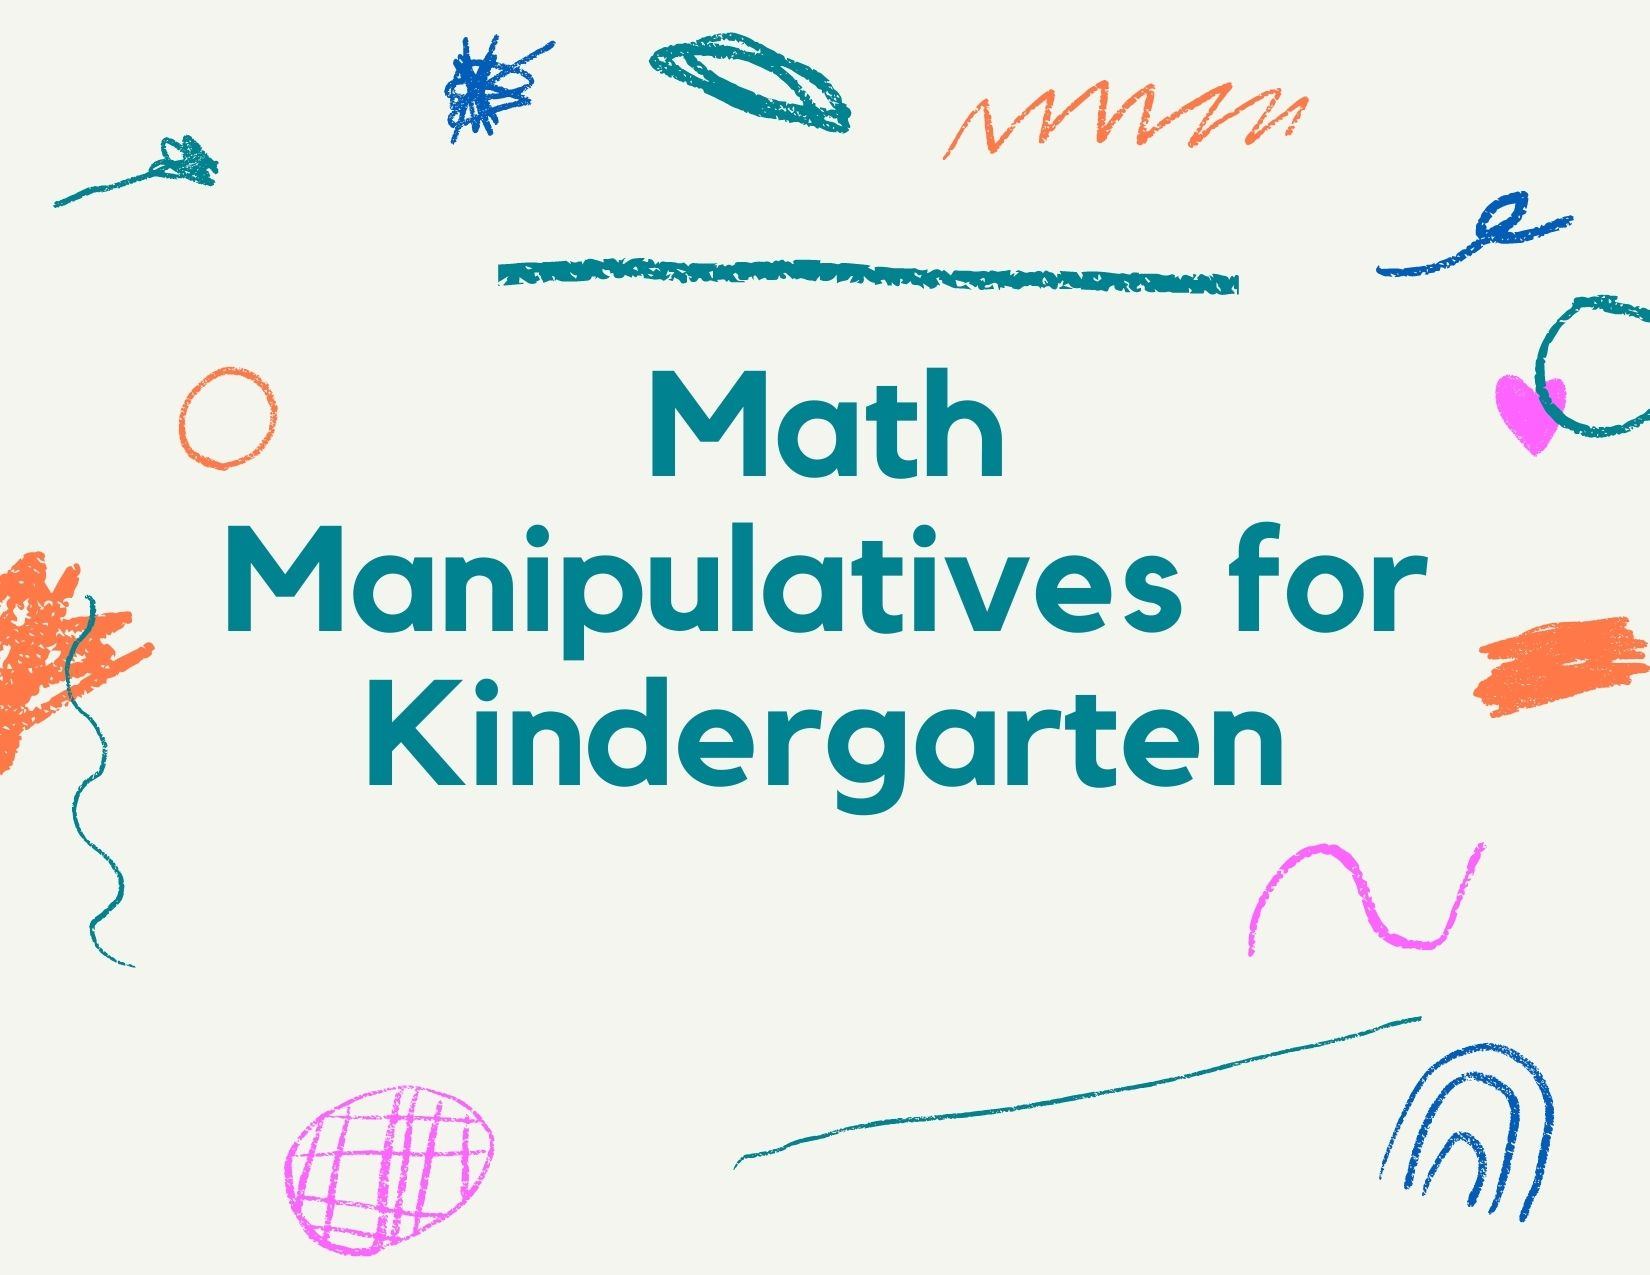 list of top 10 math manipulatives for kindergarten